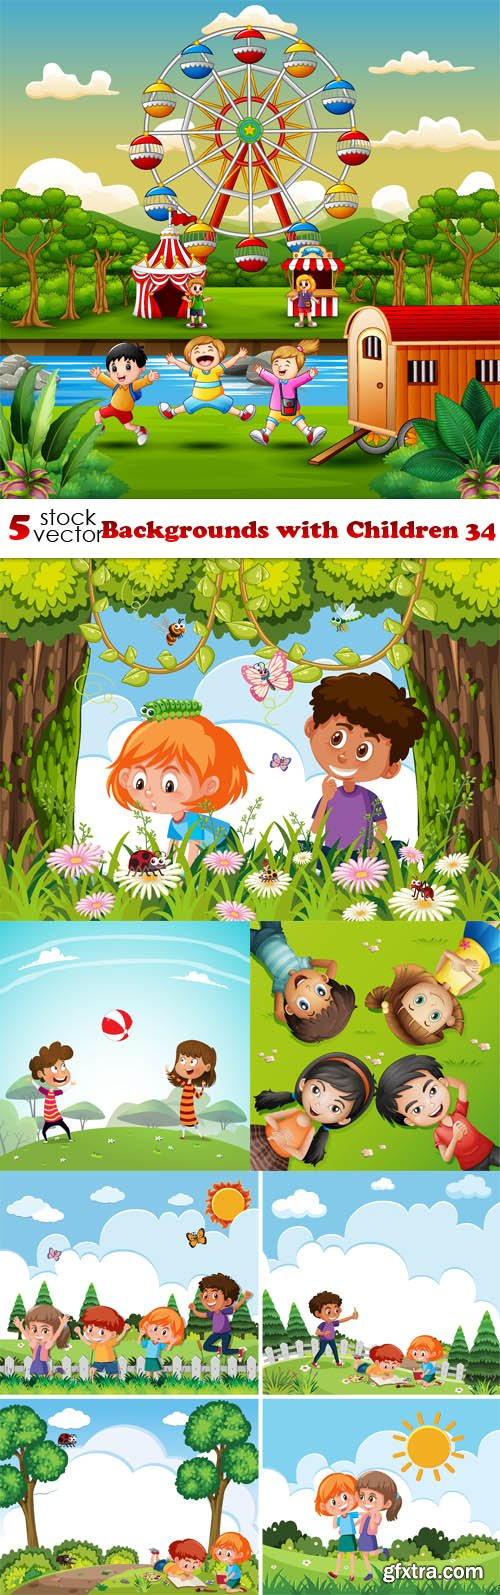 Vectors - Backgrounds with Children 34